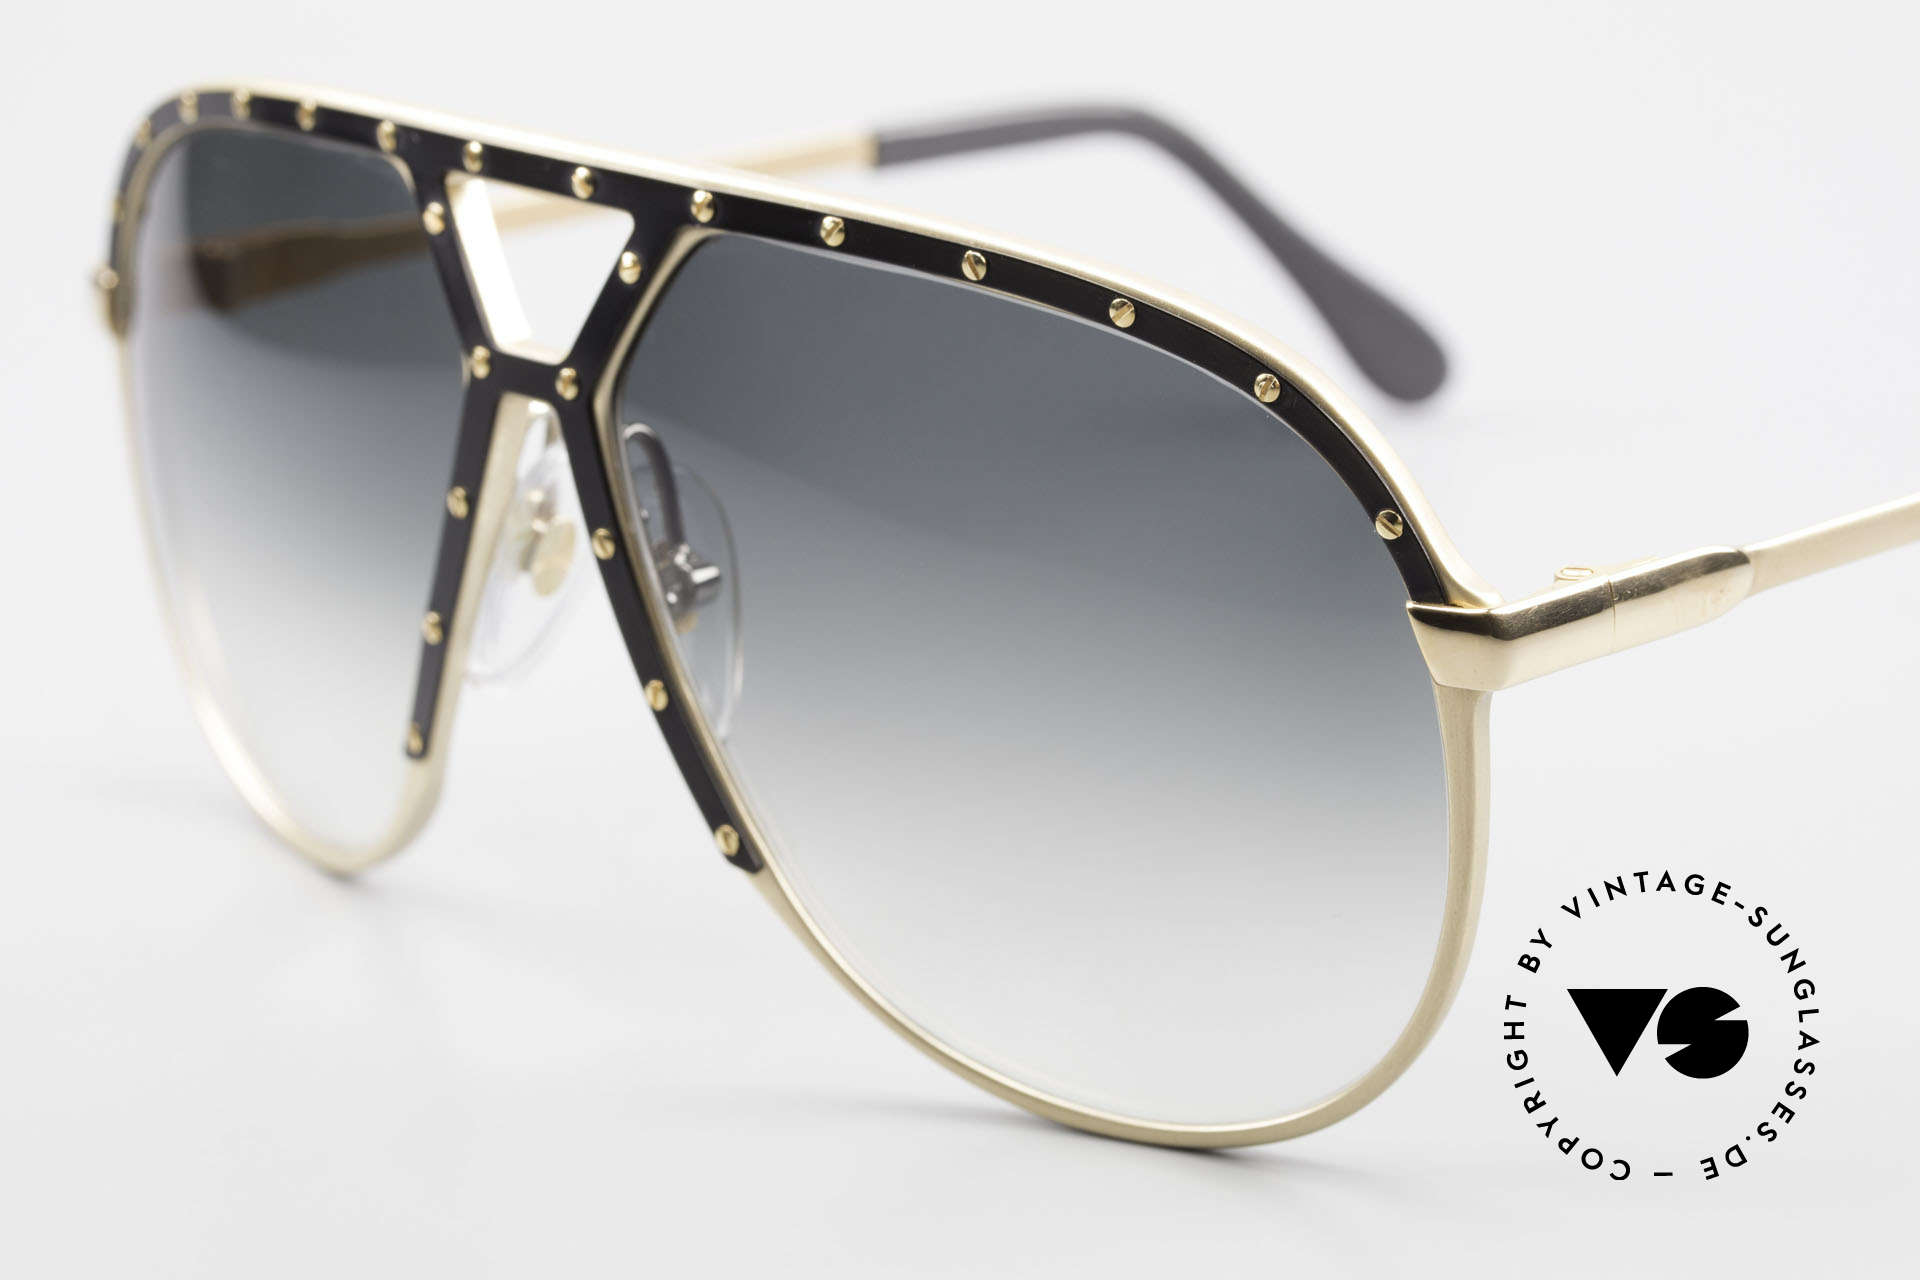 Alpina M1 Old 80's West Germany Shades, here, the precious version in GOLD-BLACK-GOLD, Made for Men